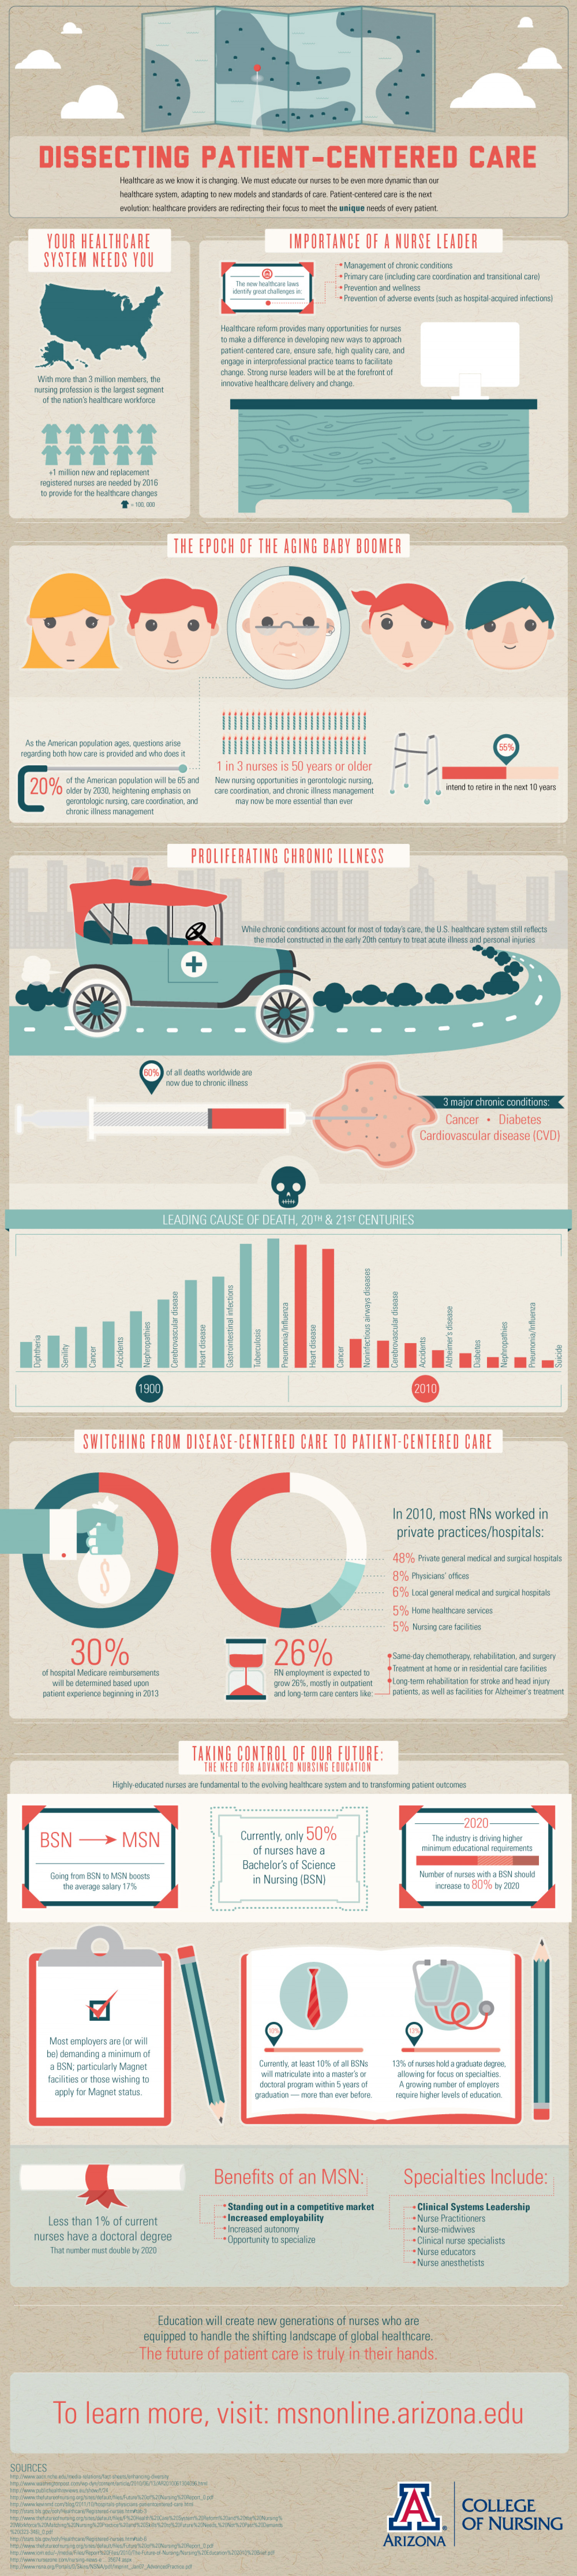 Dissecting Patient-Centered Care Infographic